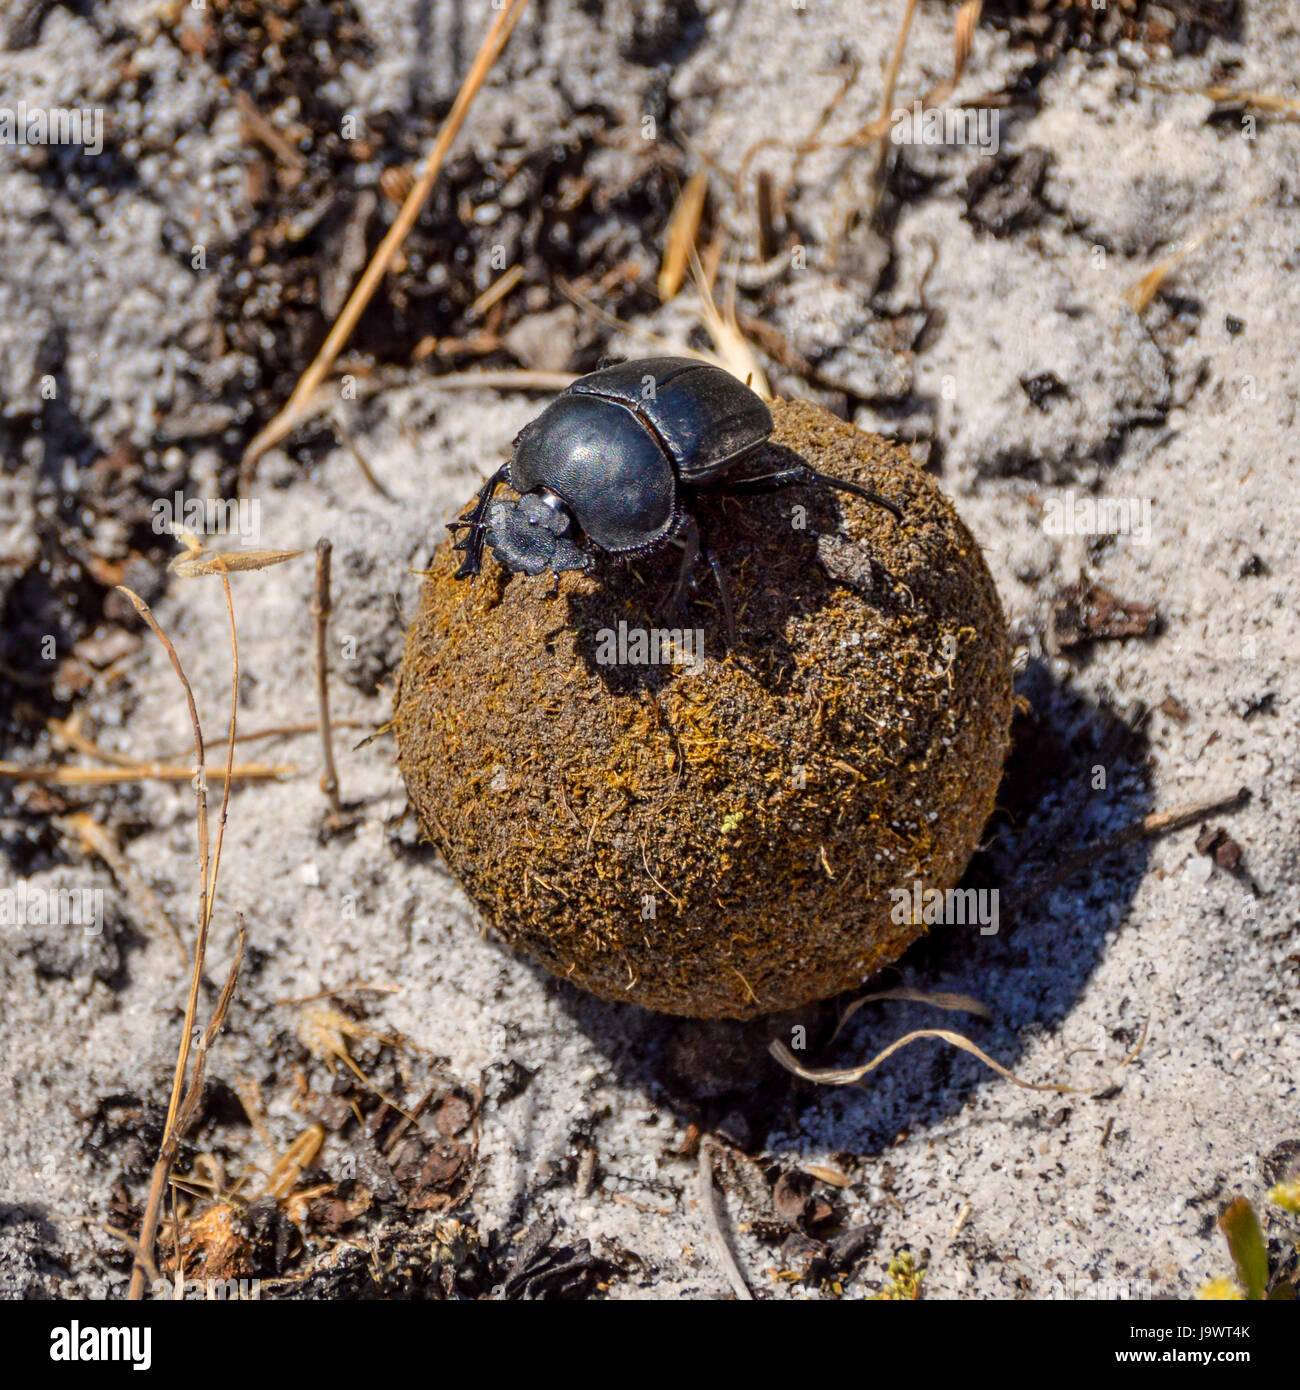 A Green Grooved Dung Beetle on a dungball in Southern Africa Stock Photo